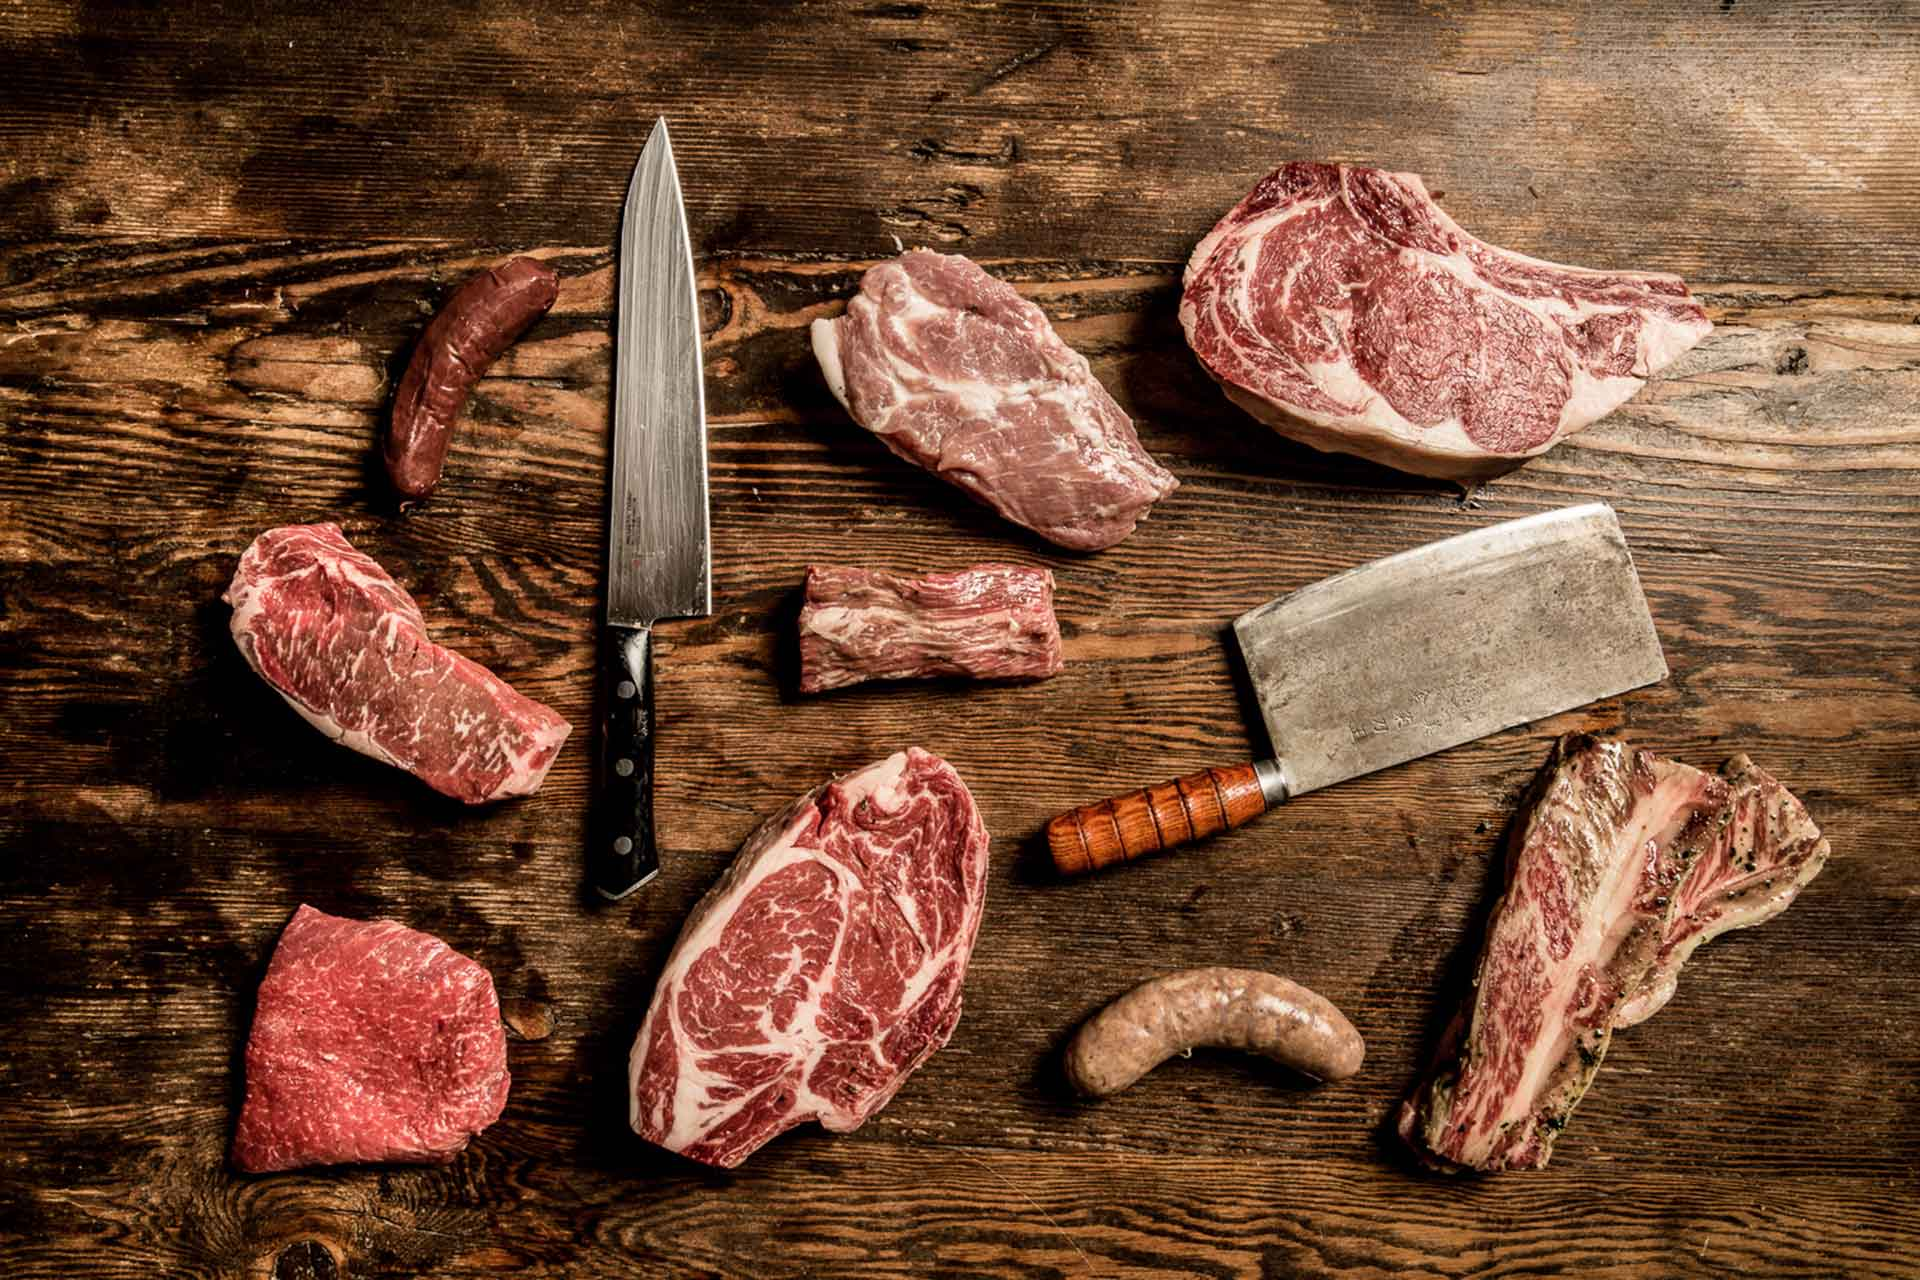 various steak cuts and cutlery